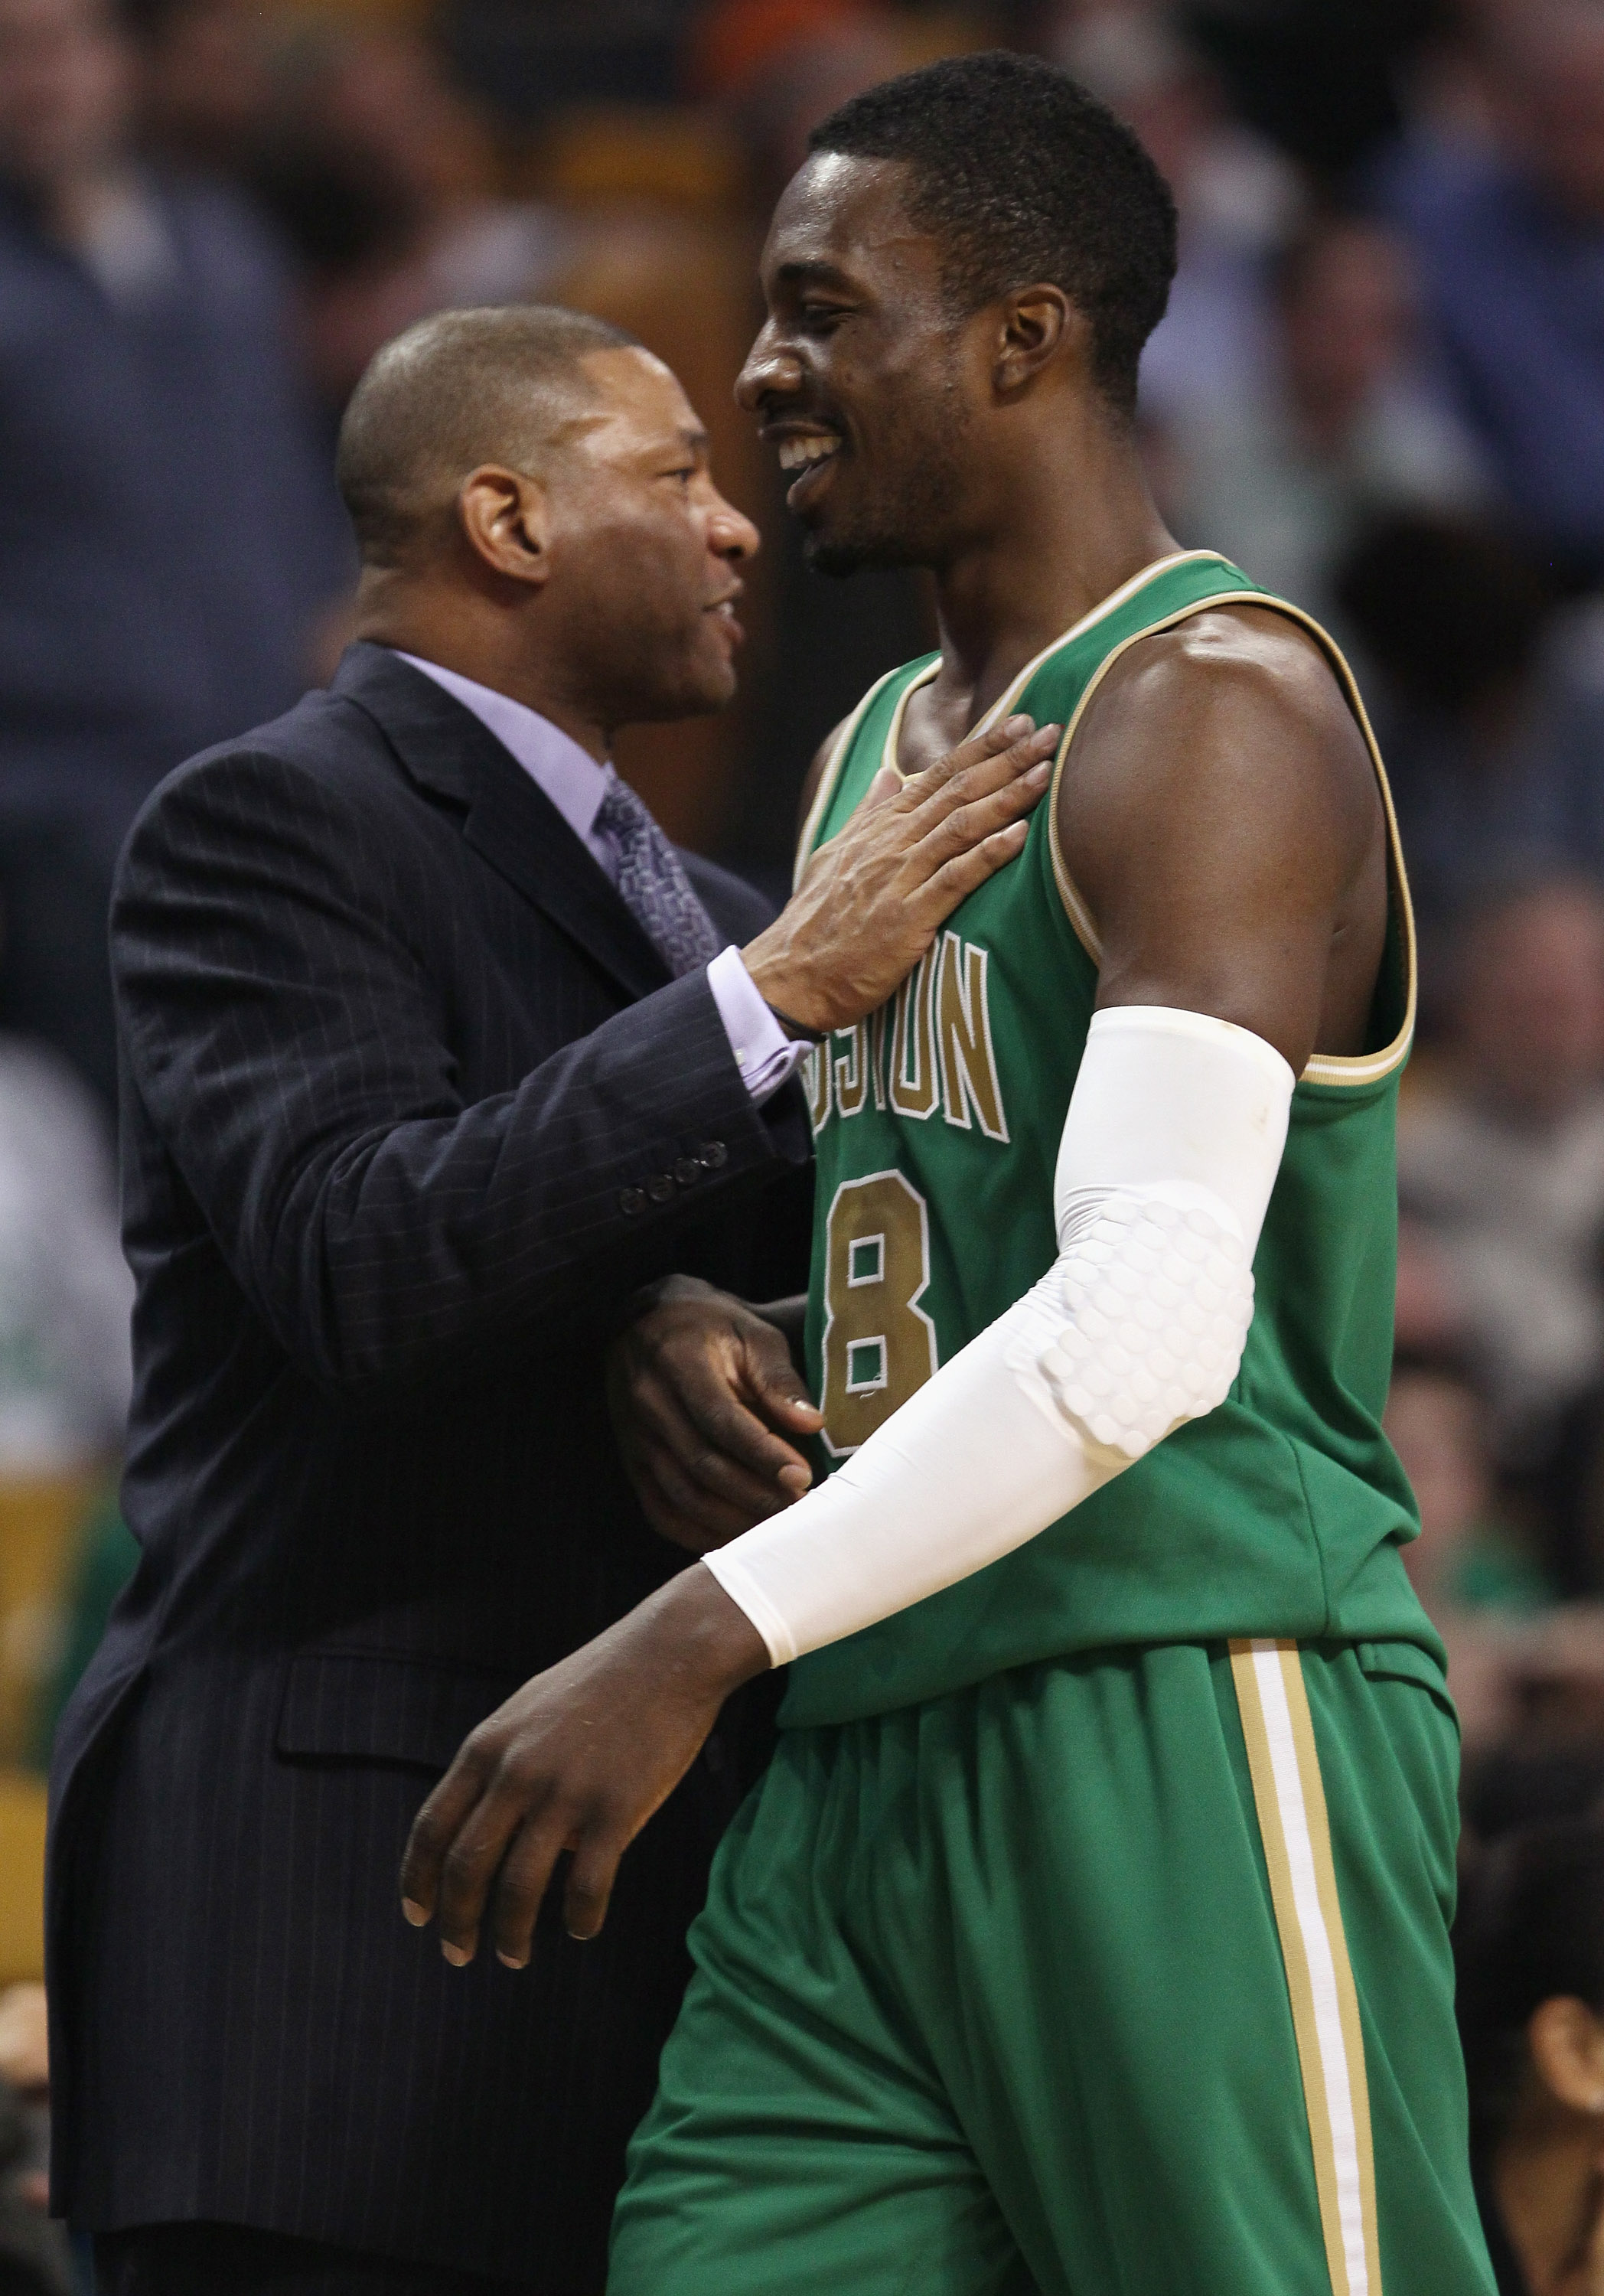 BOSTON, MA - MARCH 16:  Jeff Green #8 is congratulated by Doc Rivers of the Boston Celtics as Green is pulled from the game on March 16, 2011 at the TD Garden in Boston, Massachusetts. The Celtics defeated the Indiana Pacers 92-80. NOTE TO USER: User expr